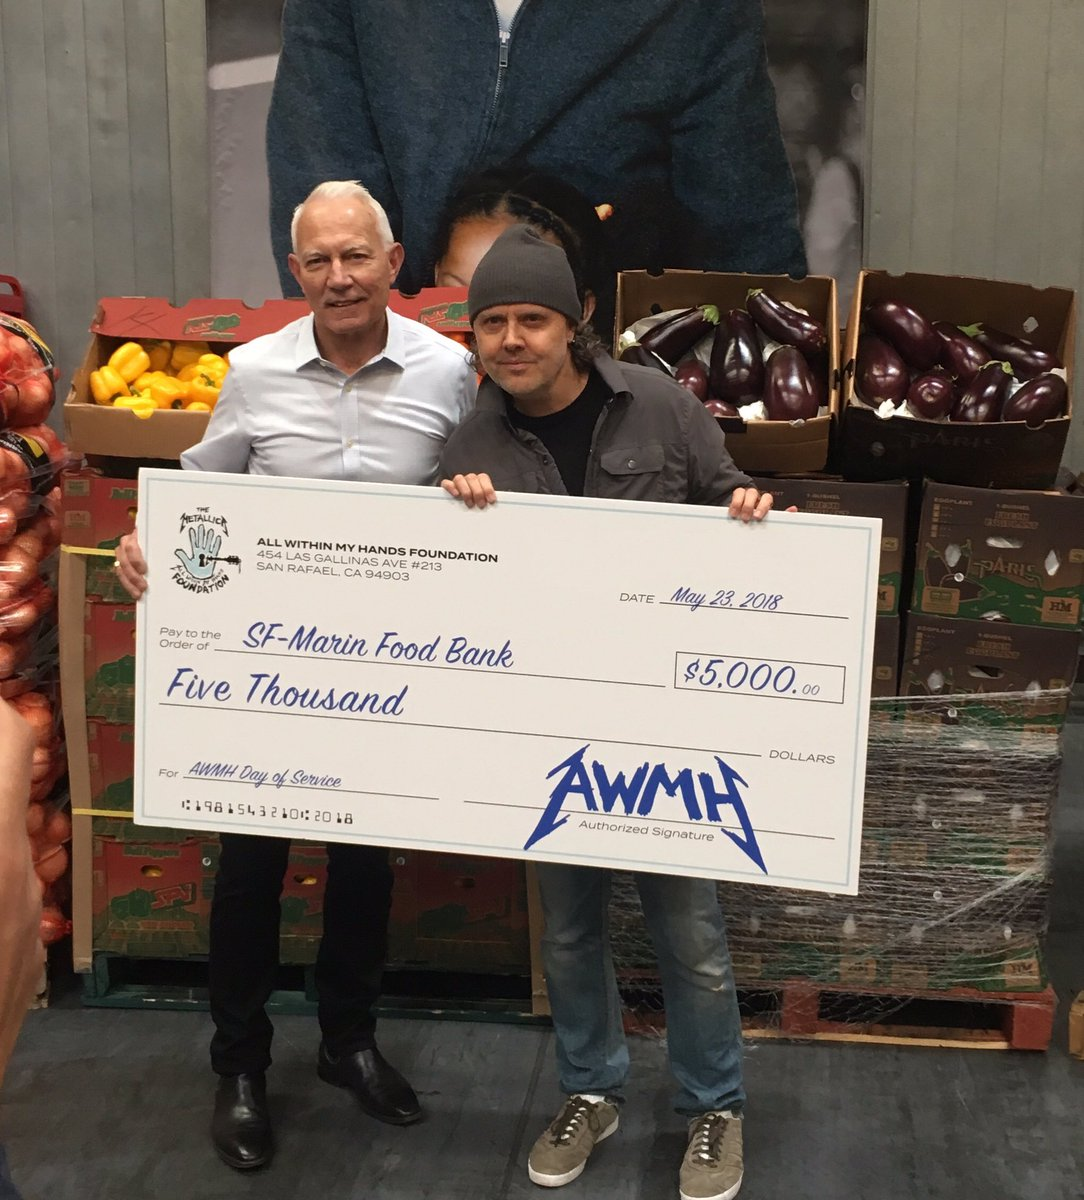 San Francisco Marin Food Bank On Twitter Great Day At The Food